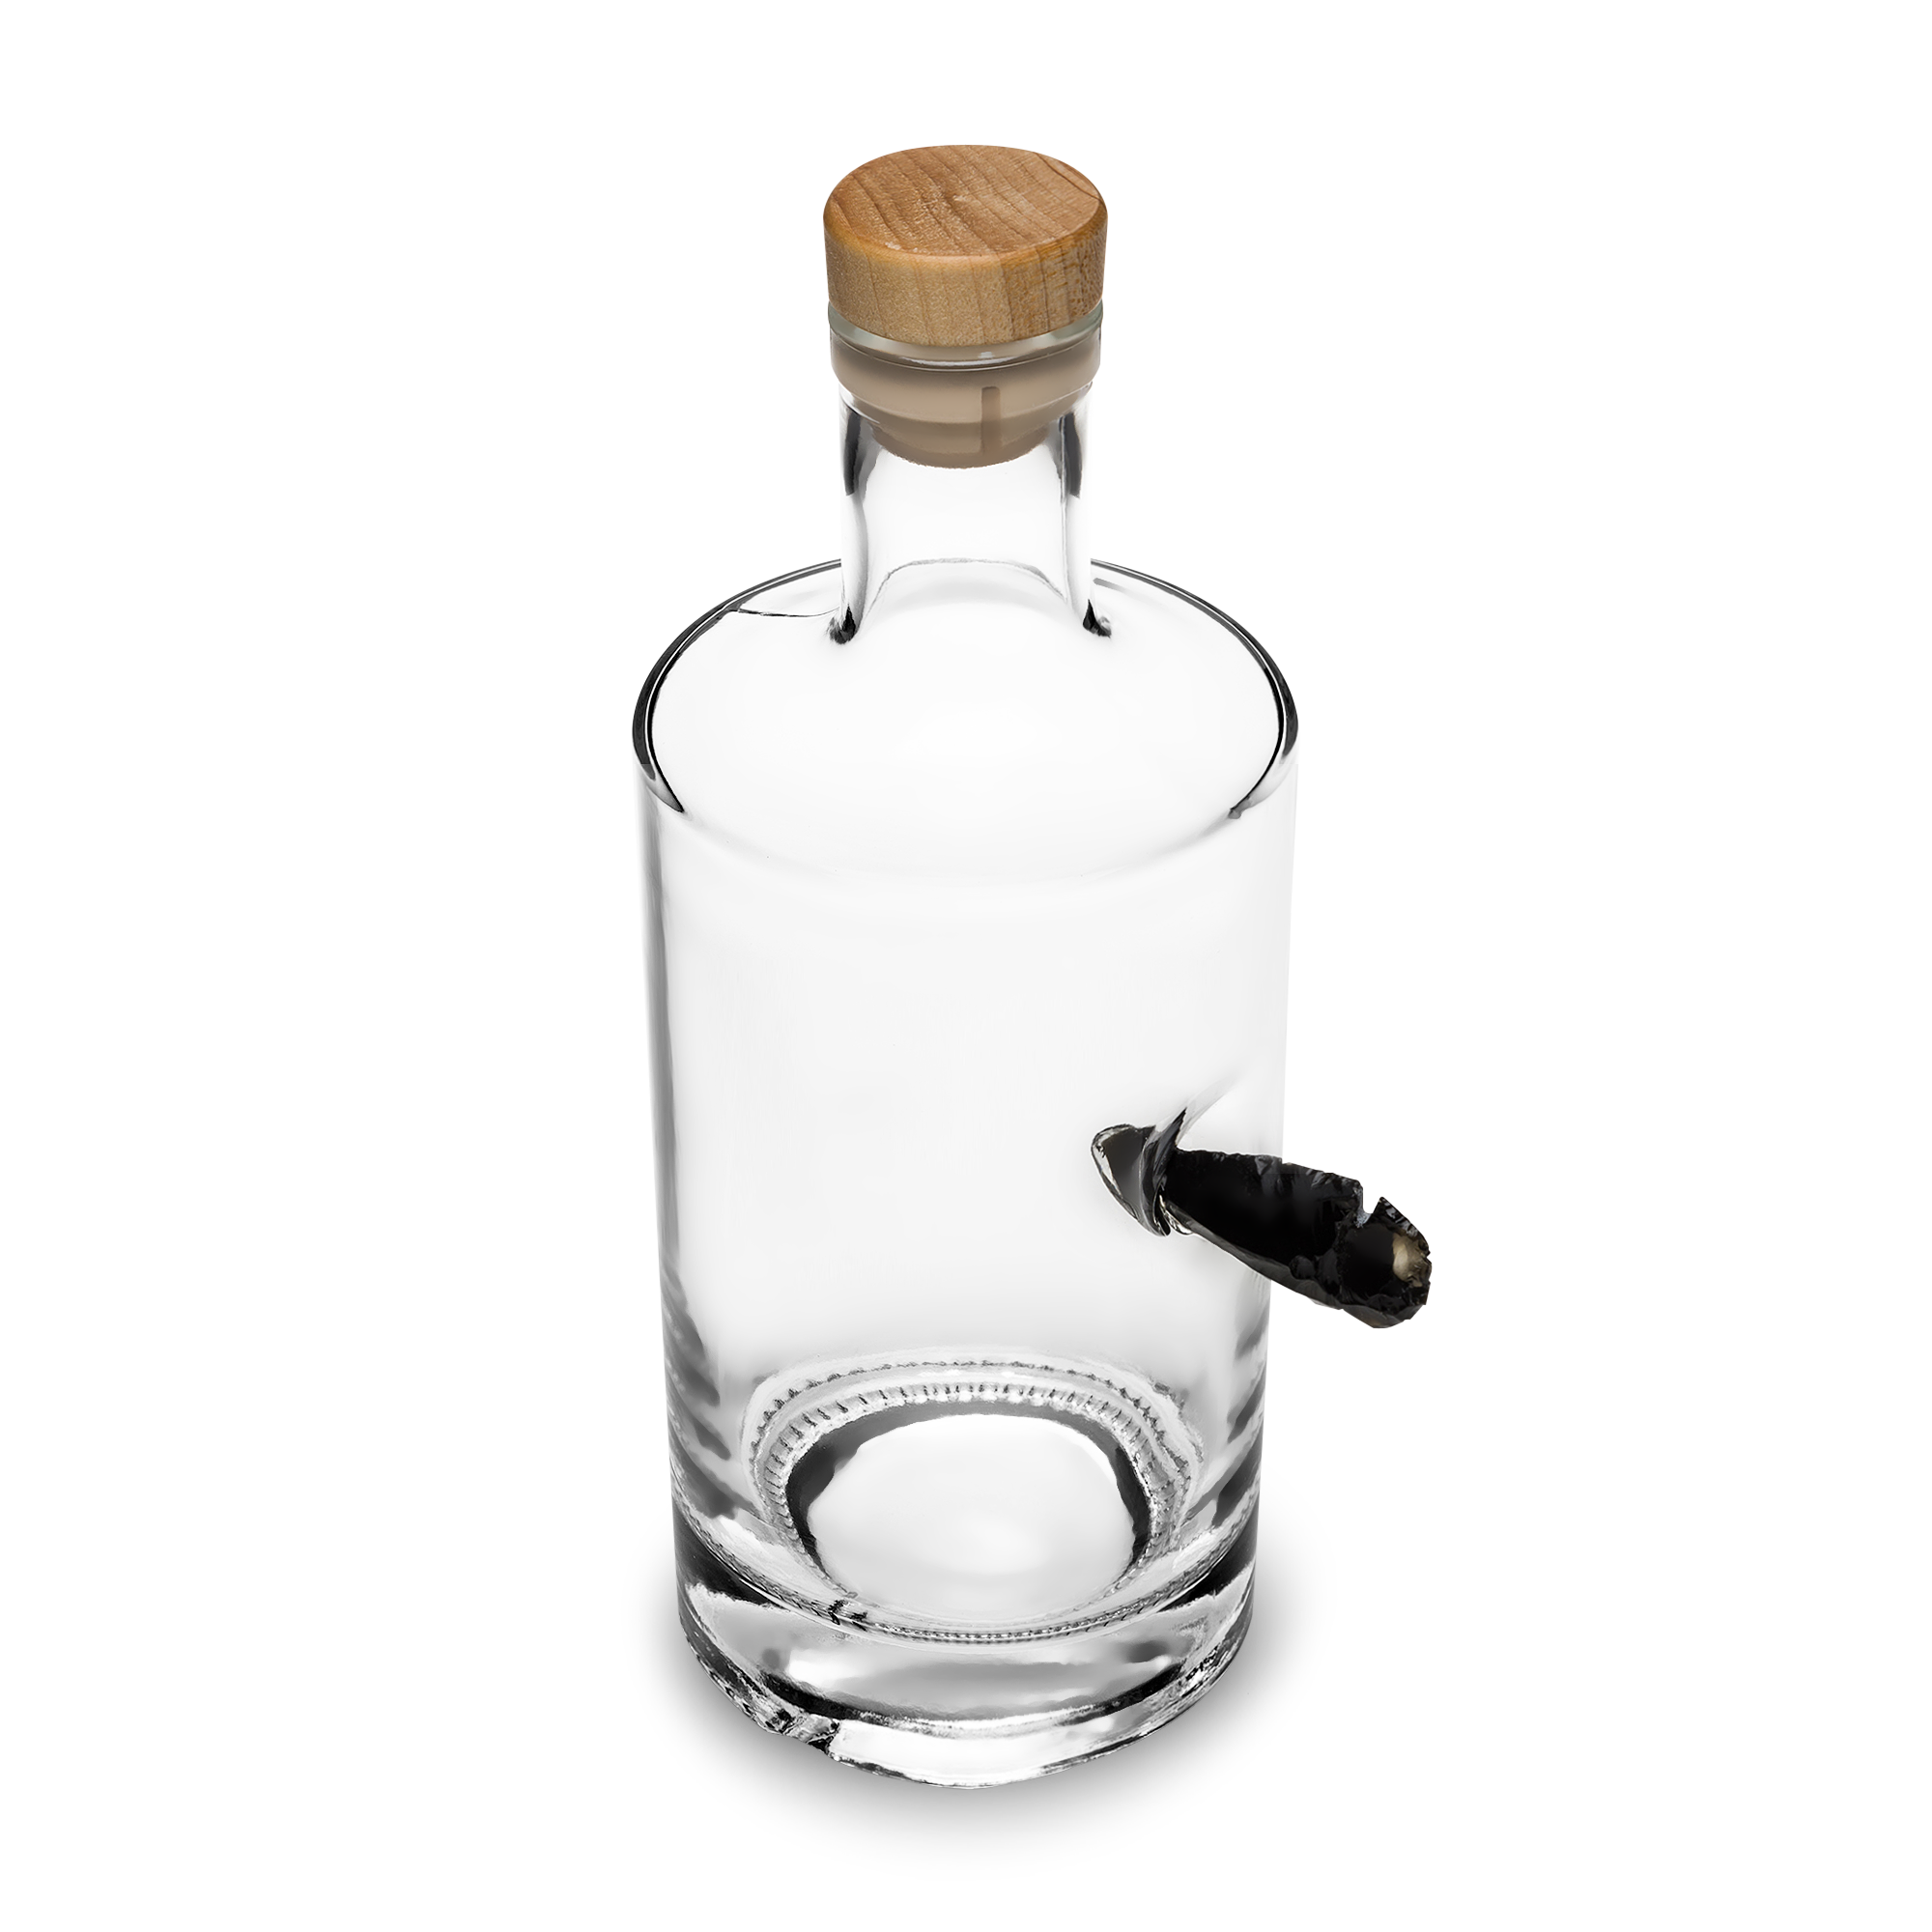 glass bottle product photo